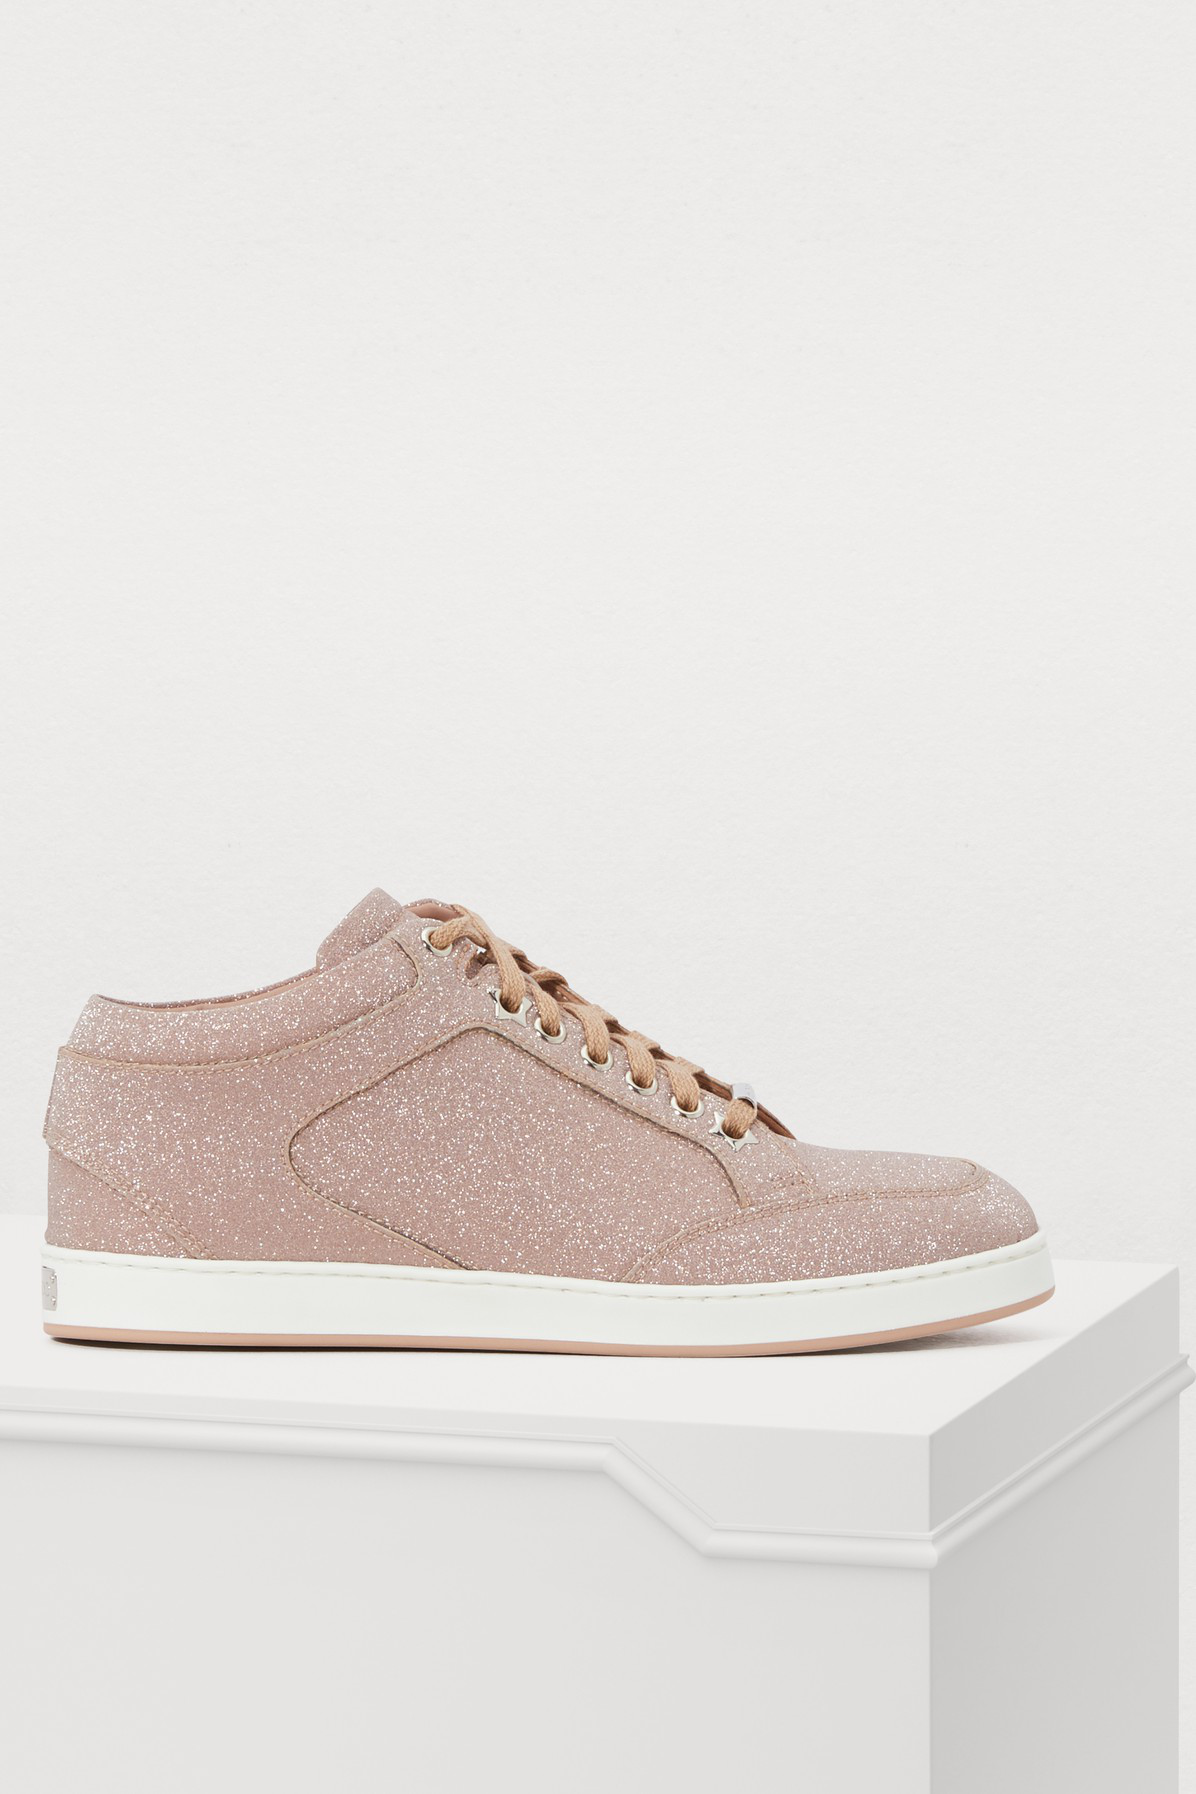 3c24841578d3 Jimmy Choo Miami Leather And Glitter Sneakers In Pink